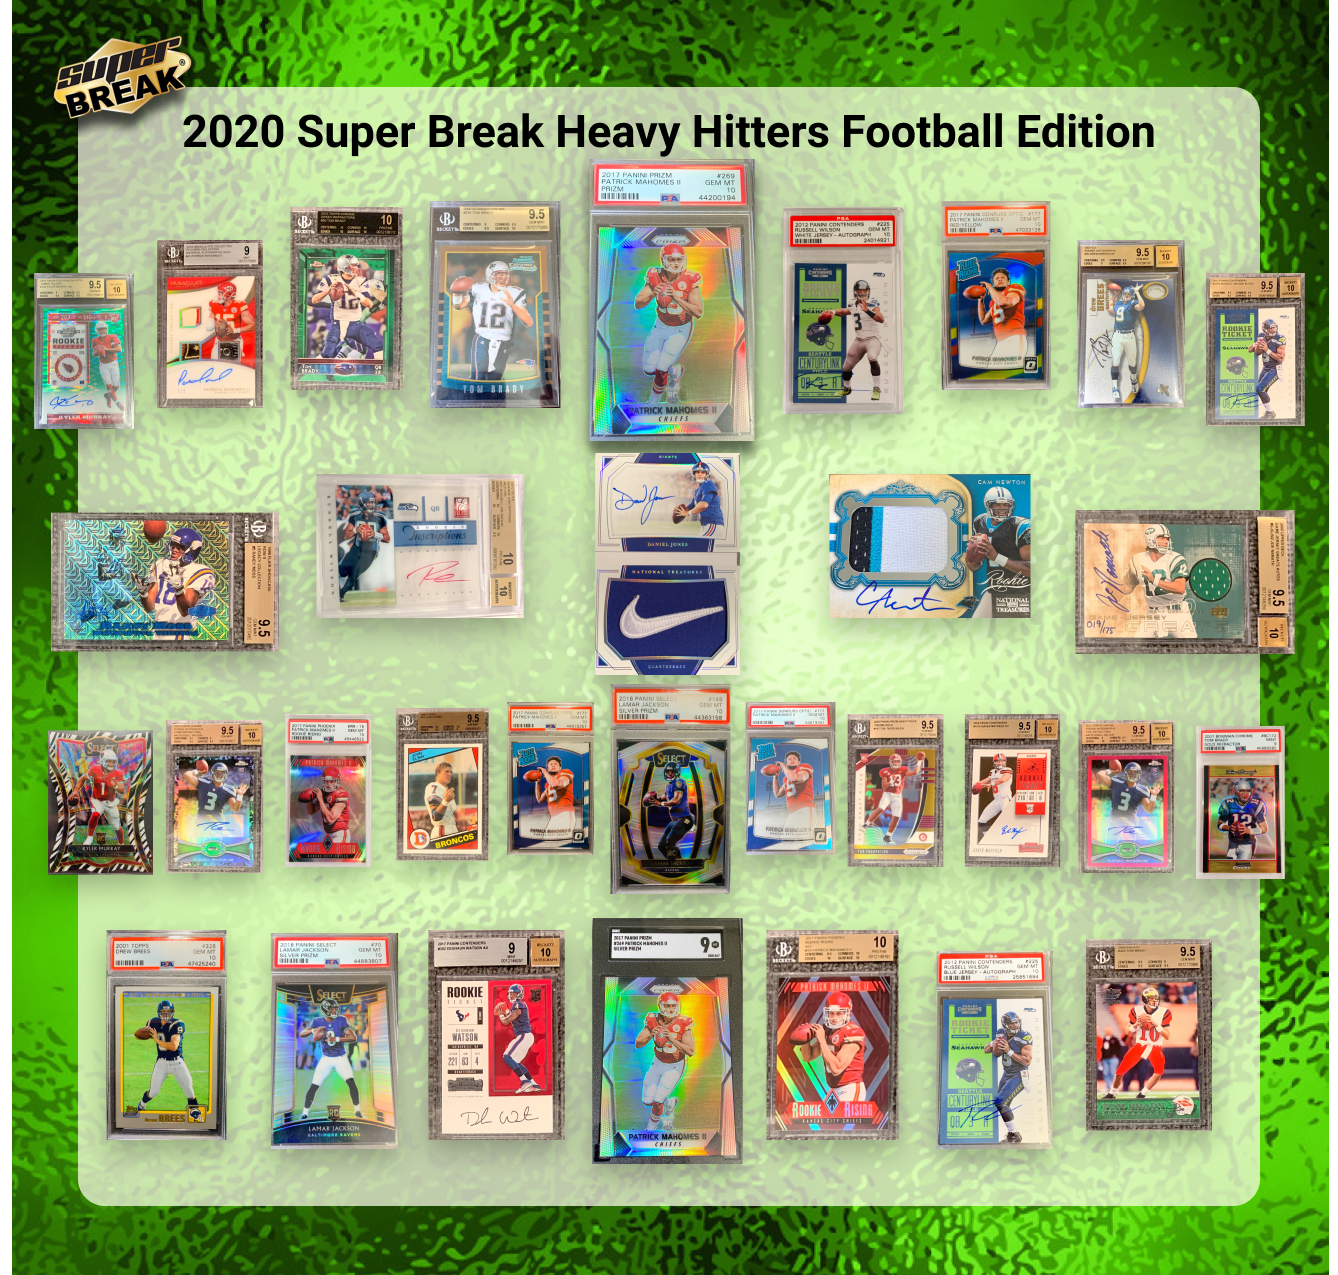 2020 Super Break Heavy Hitters Football